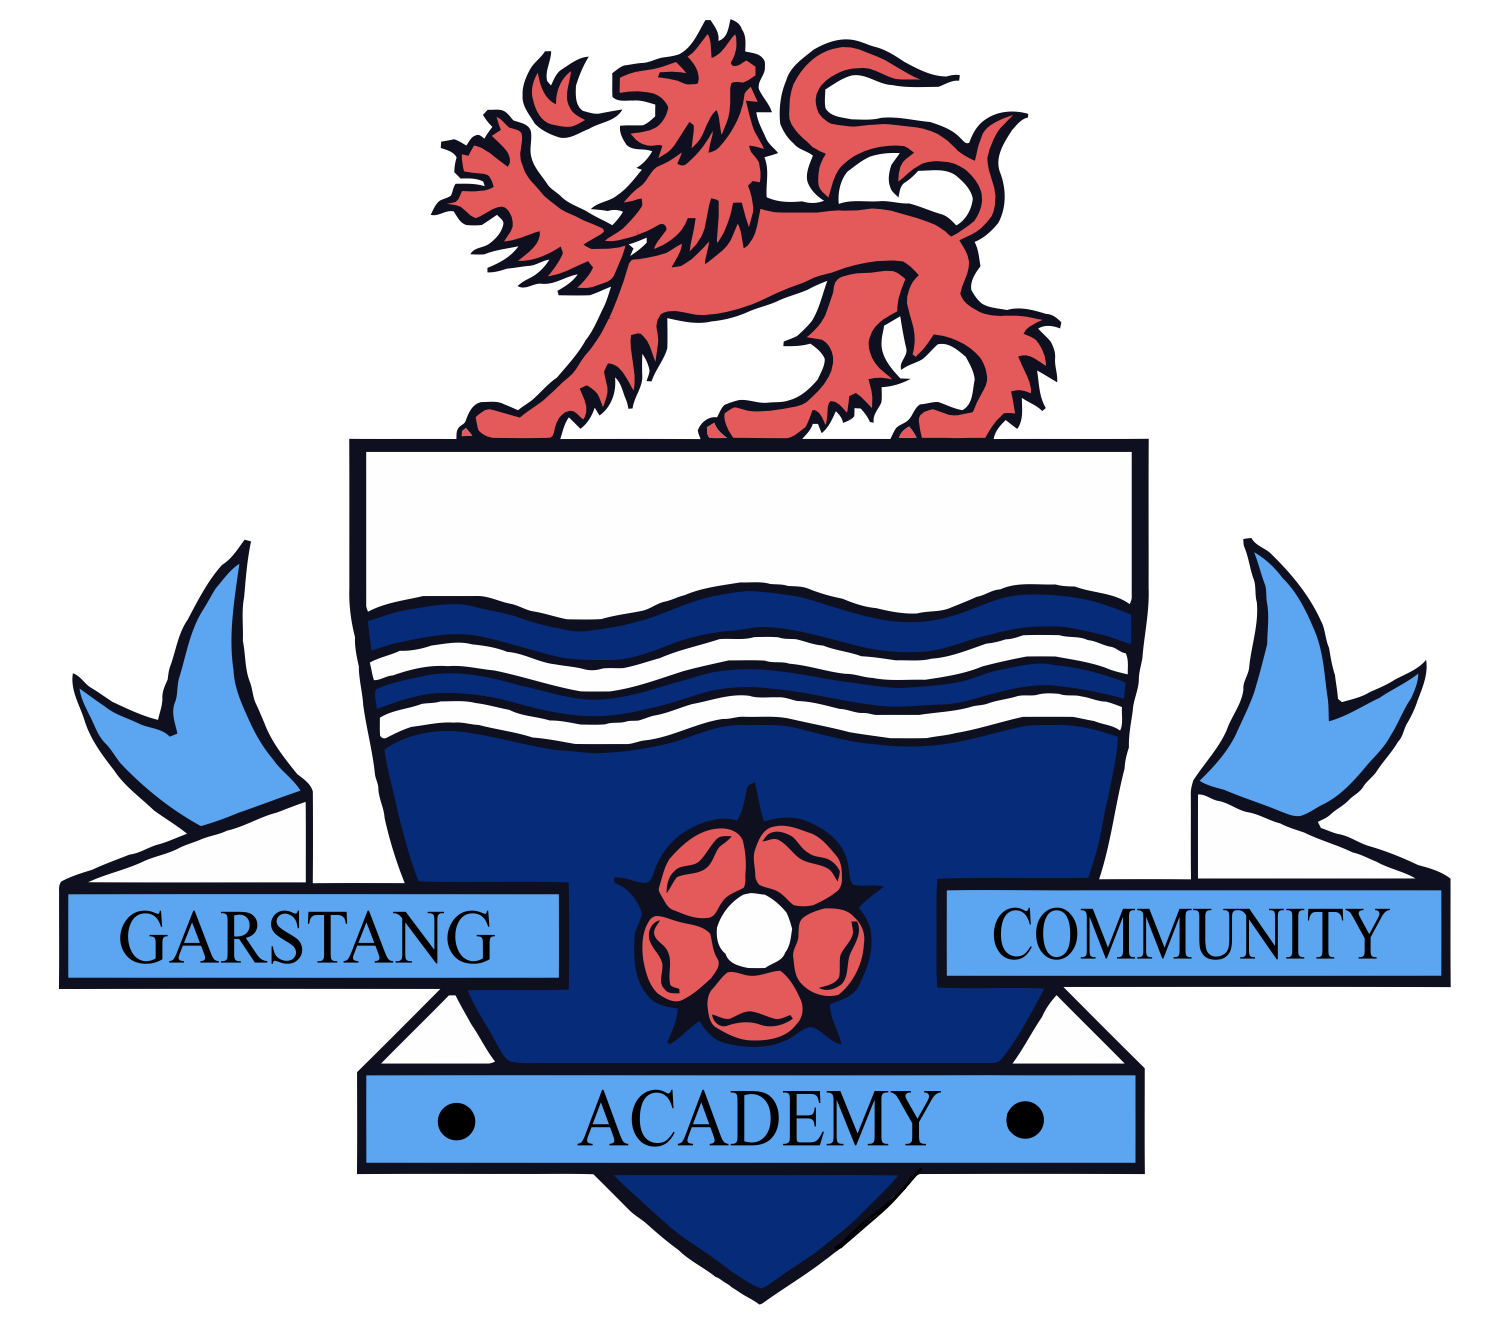 Contact us | Garstang Community Academy